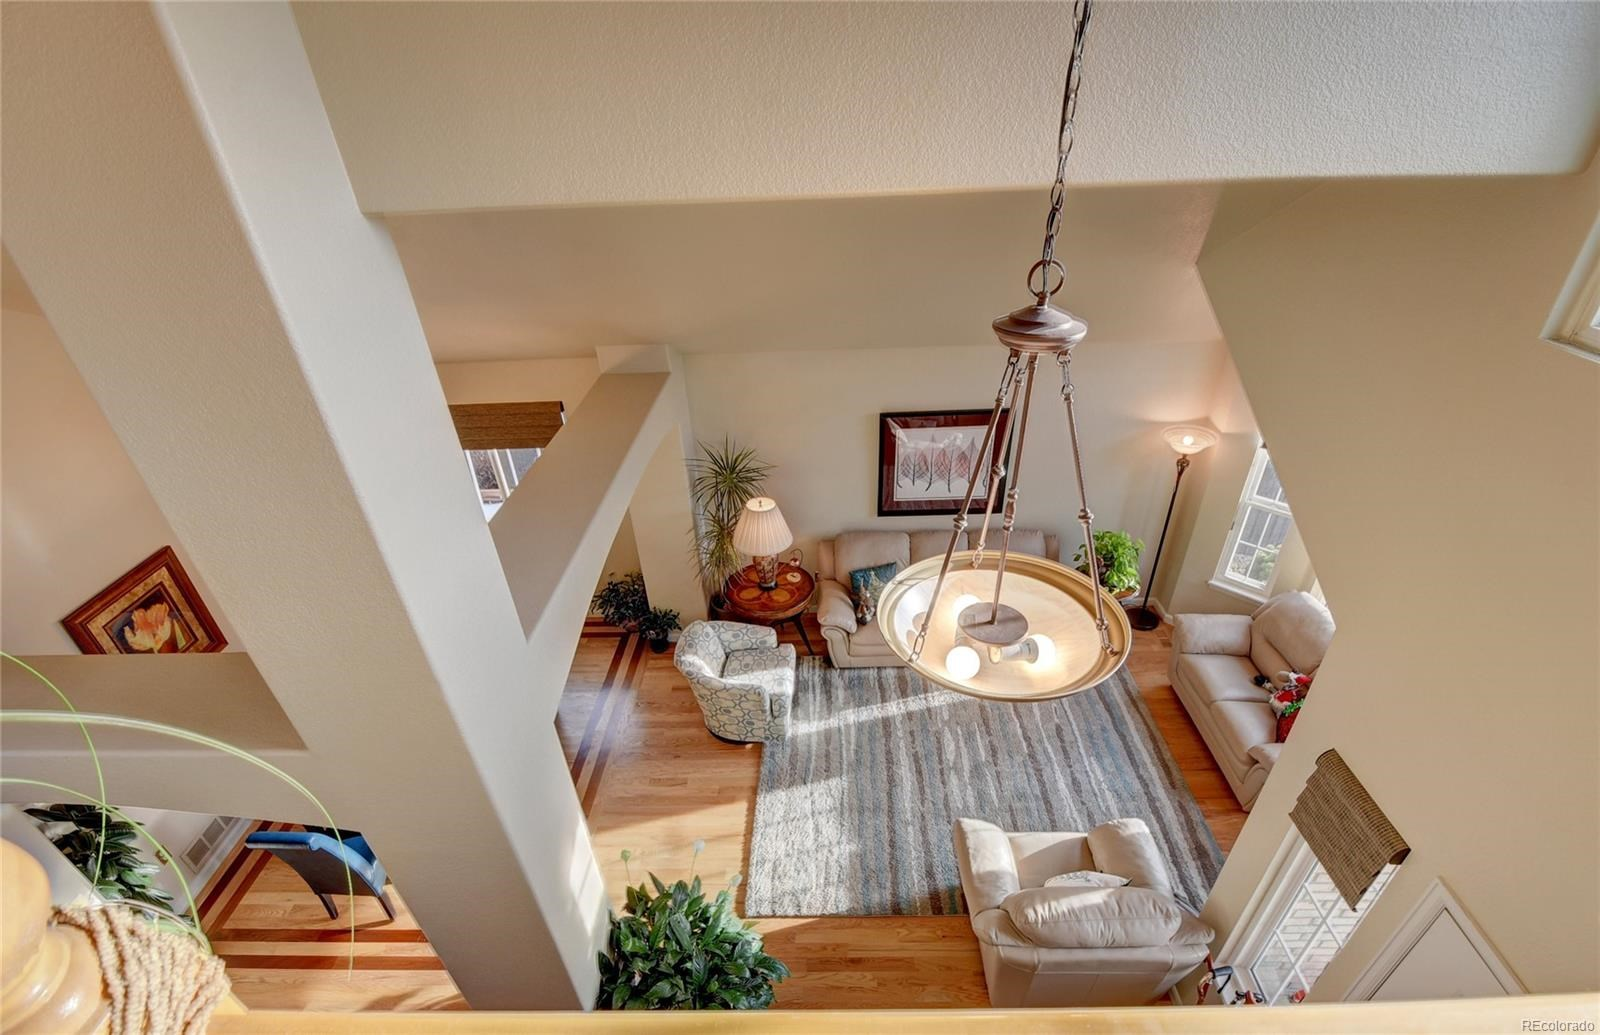 MLS# 9913436 - 25 - 5726 W 81st Place, Arvada, CO 80003